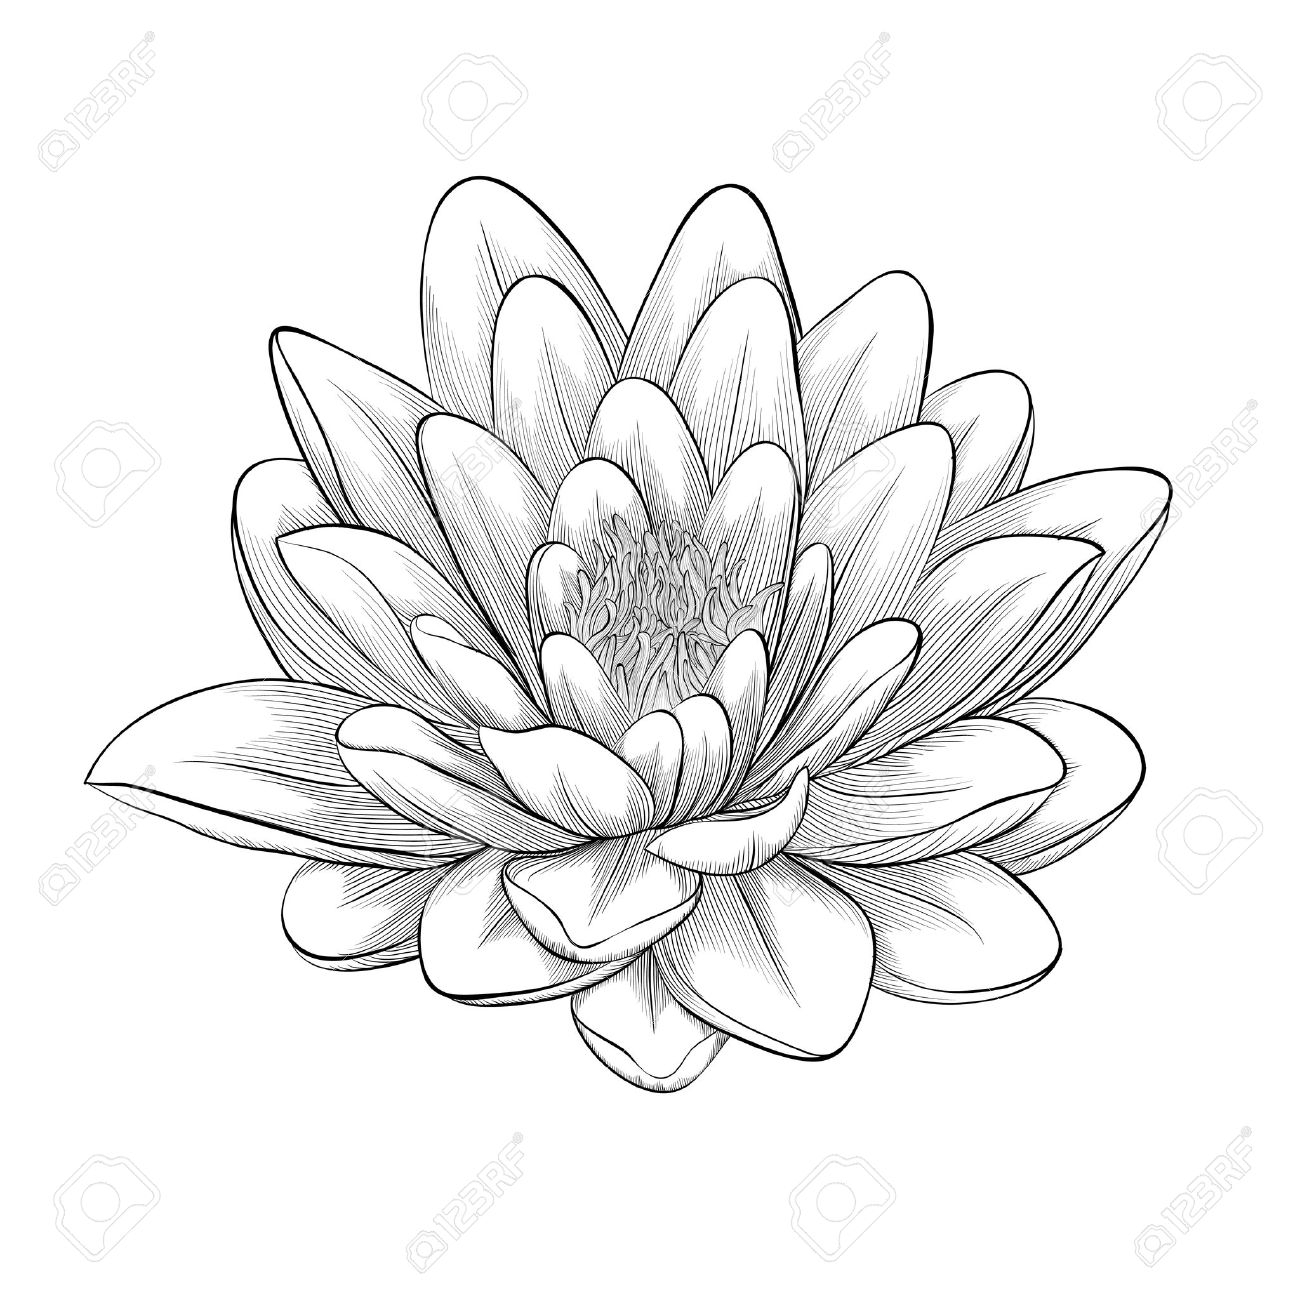 1300x1300 Lotus Flower Drawing Black And White Beautiful Monochrome, Black